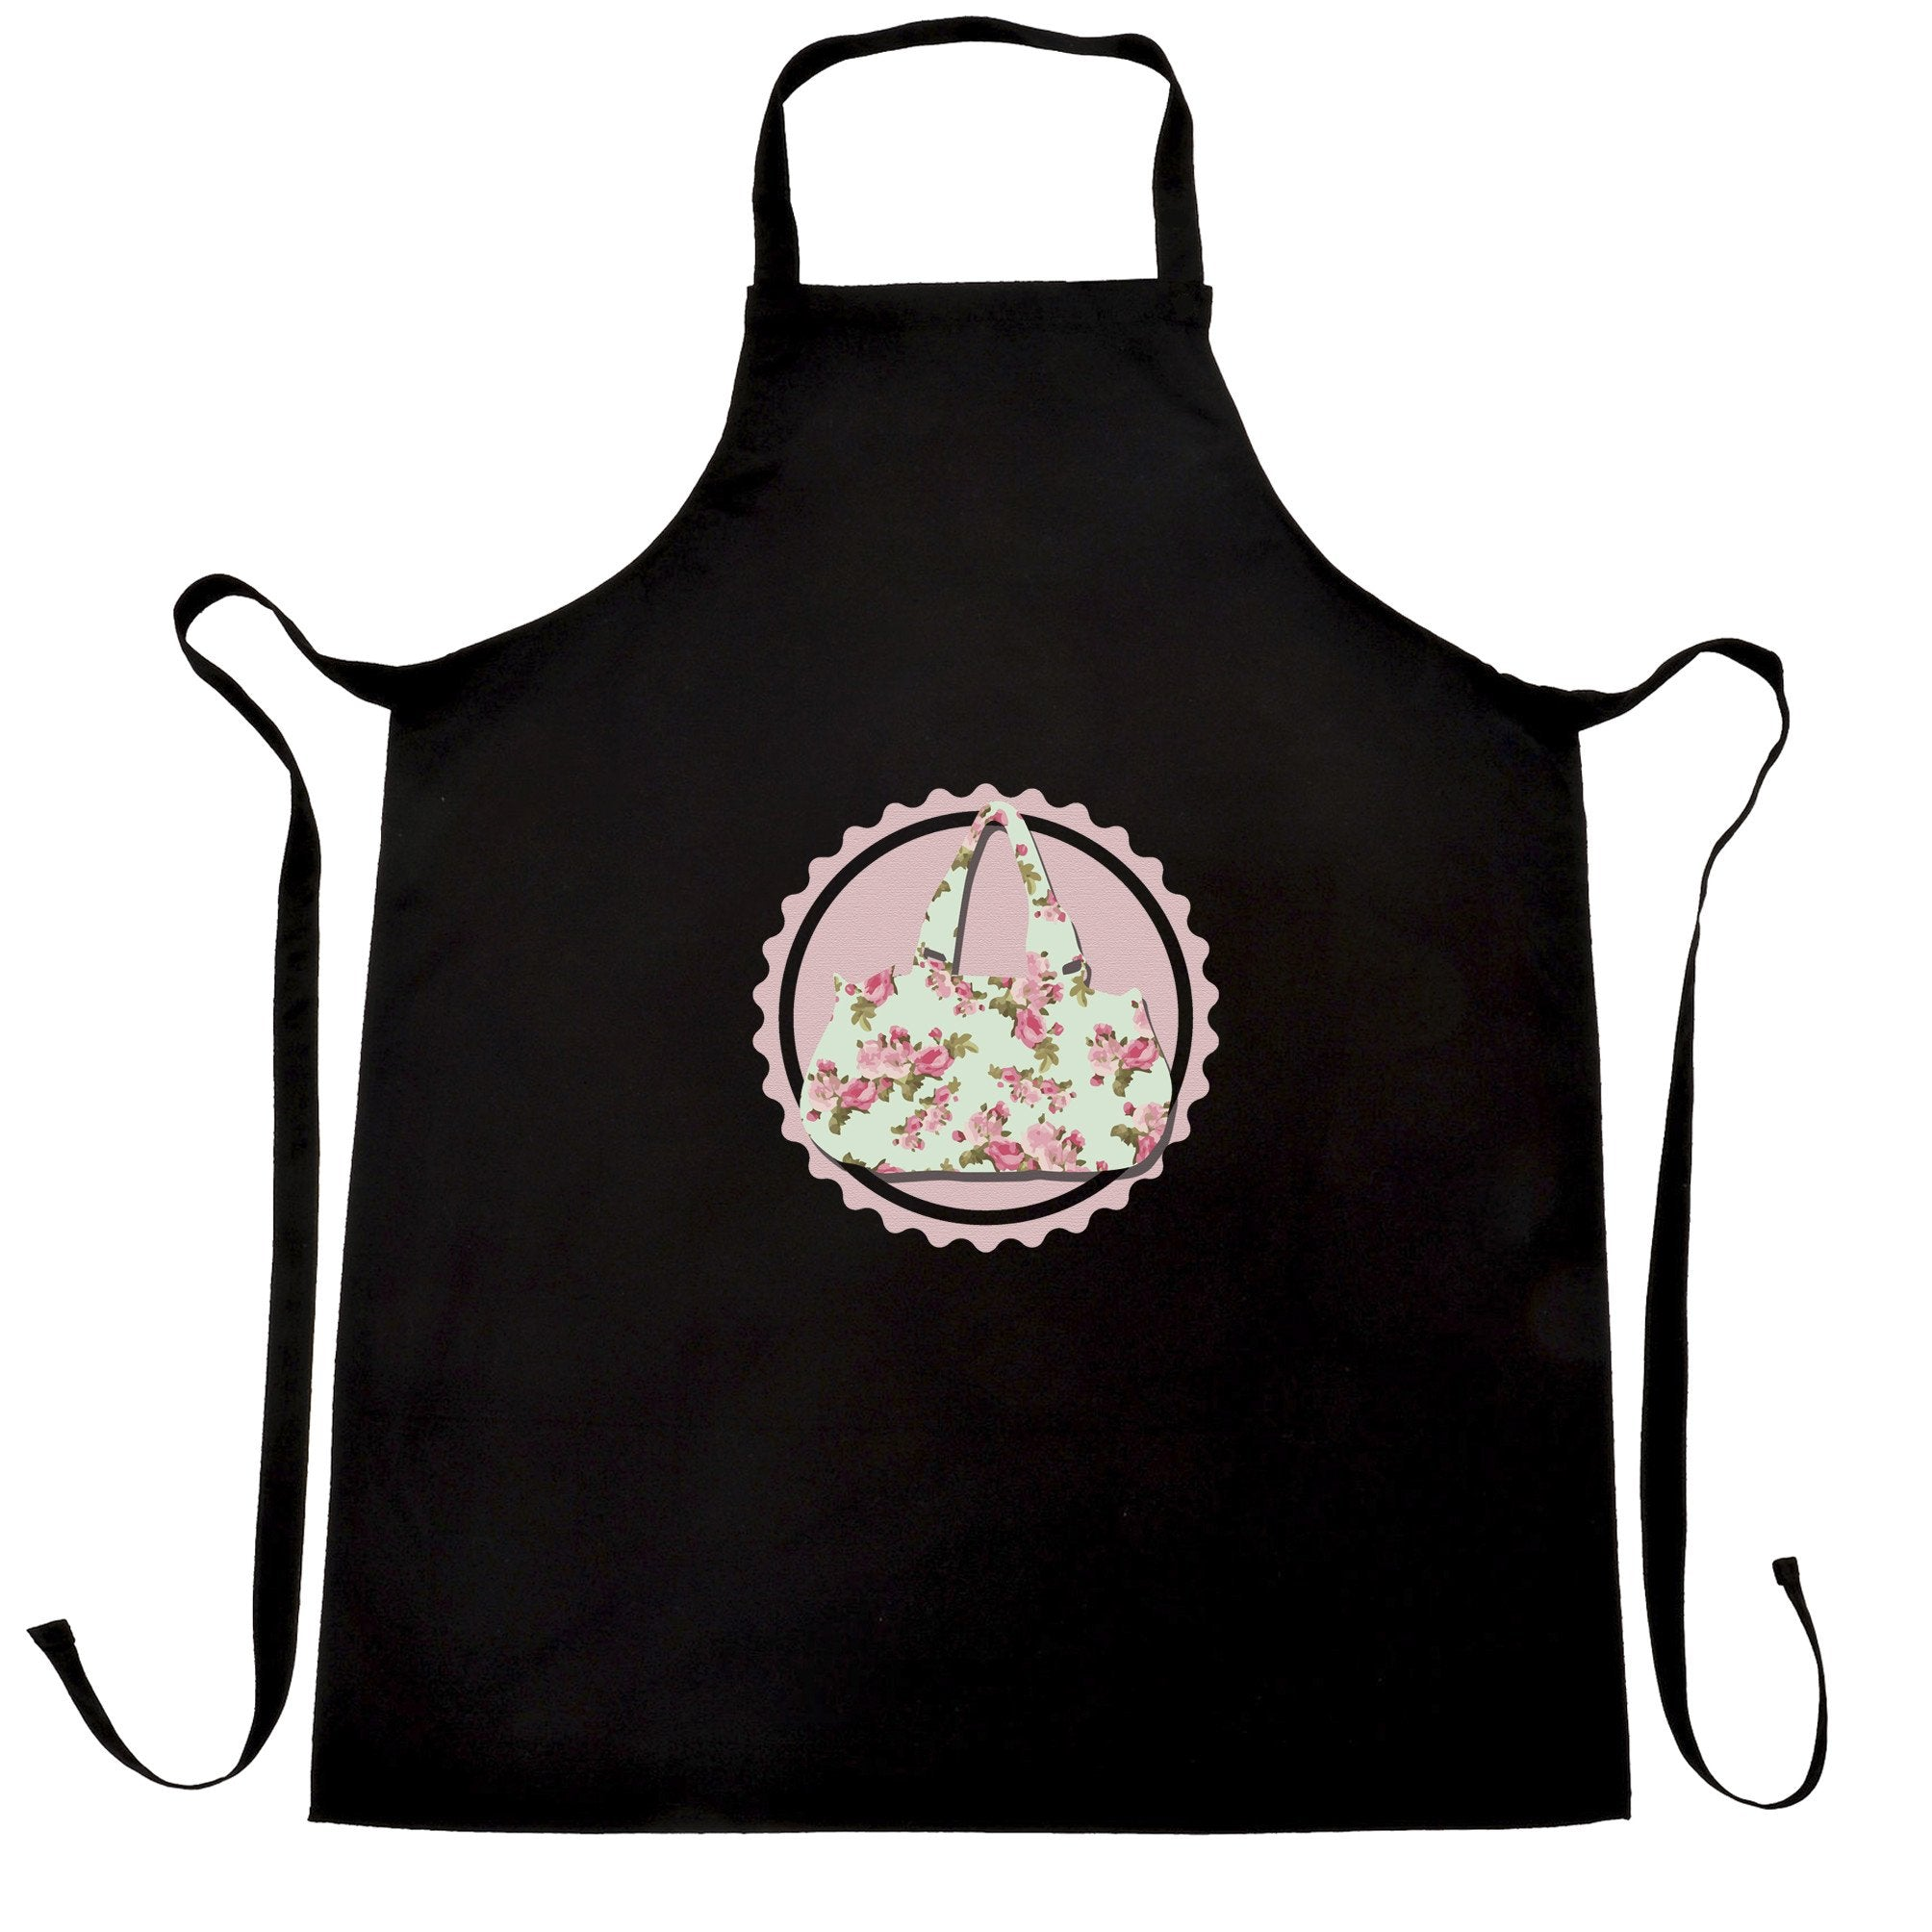 Vintage Logo Chef's Apron Floral Patterned Handbag Badge